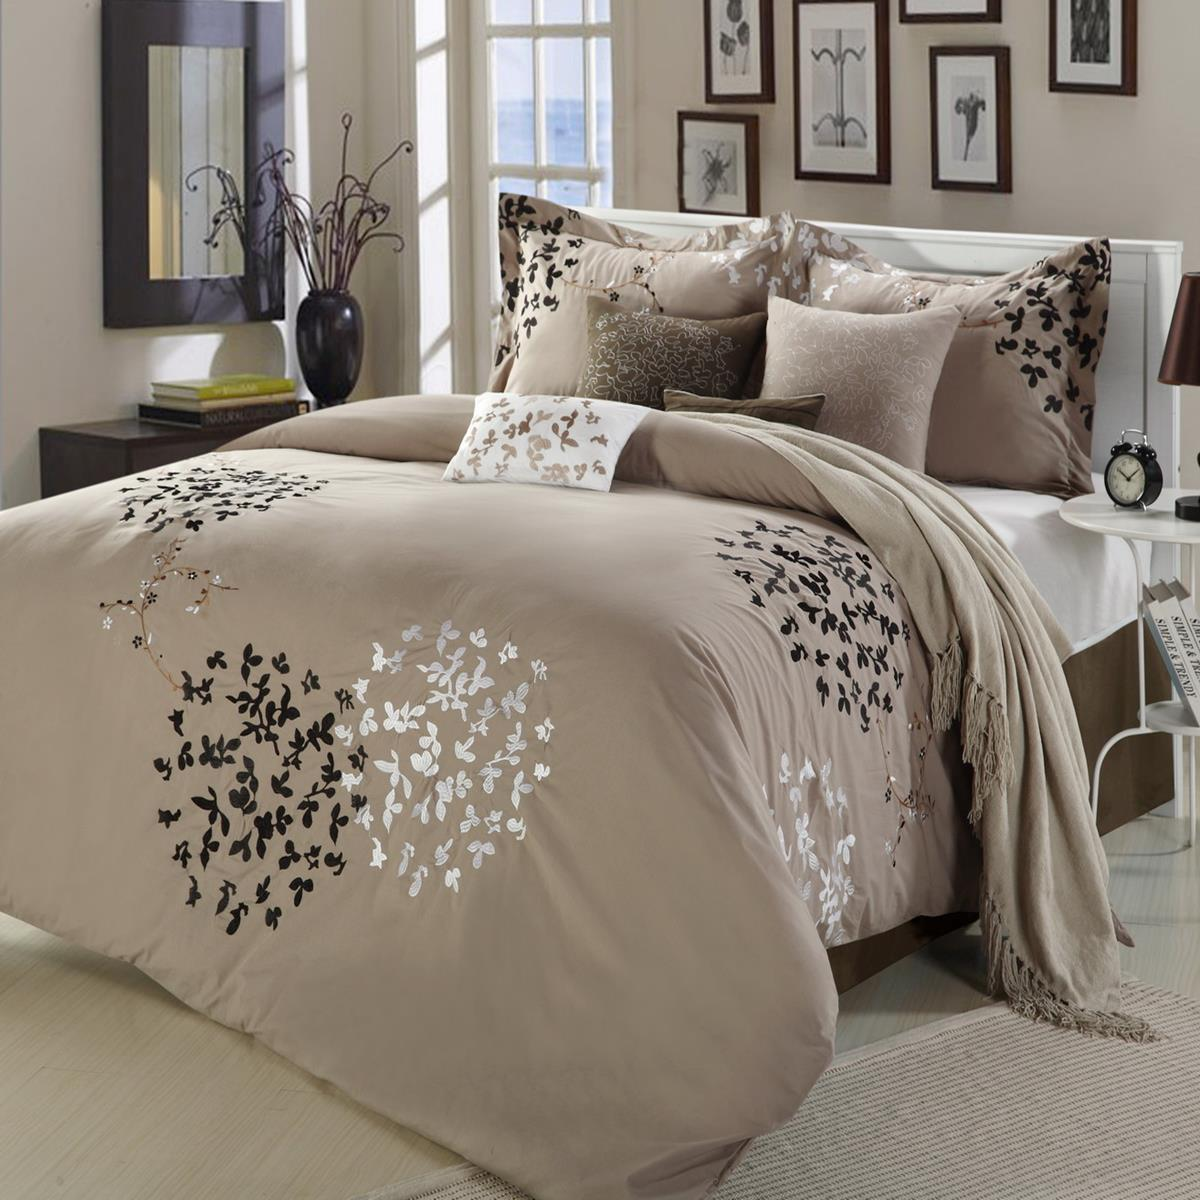 cheila beige silver brown 8 piece king comforter bed in a bag set new ebay. Black Bedroom Furniture Sets. Home Design Ideas